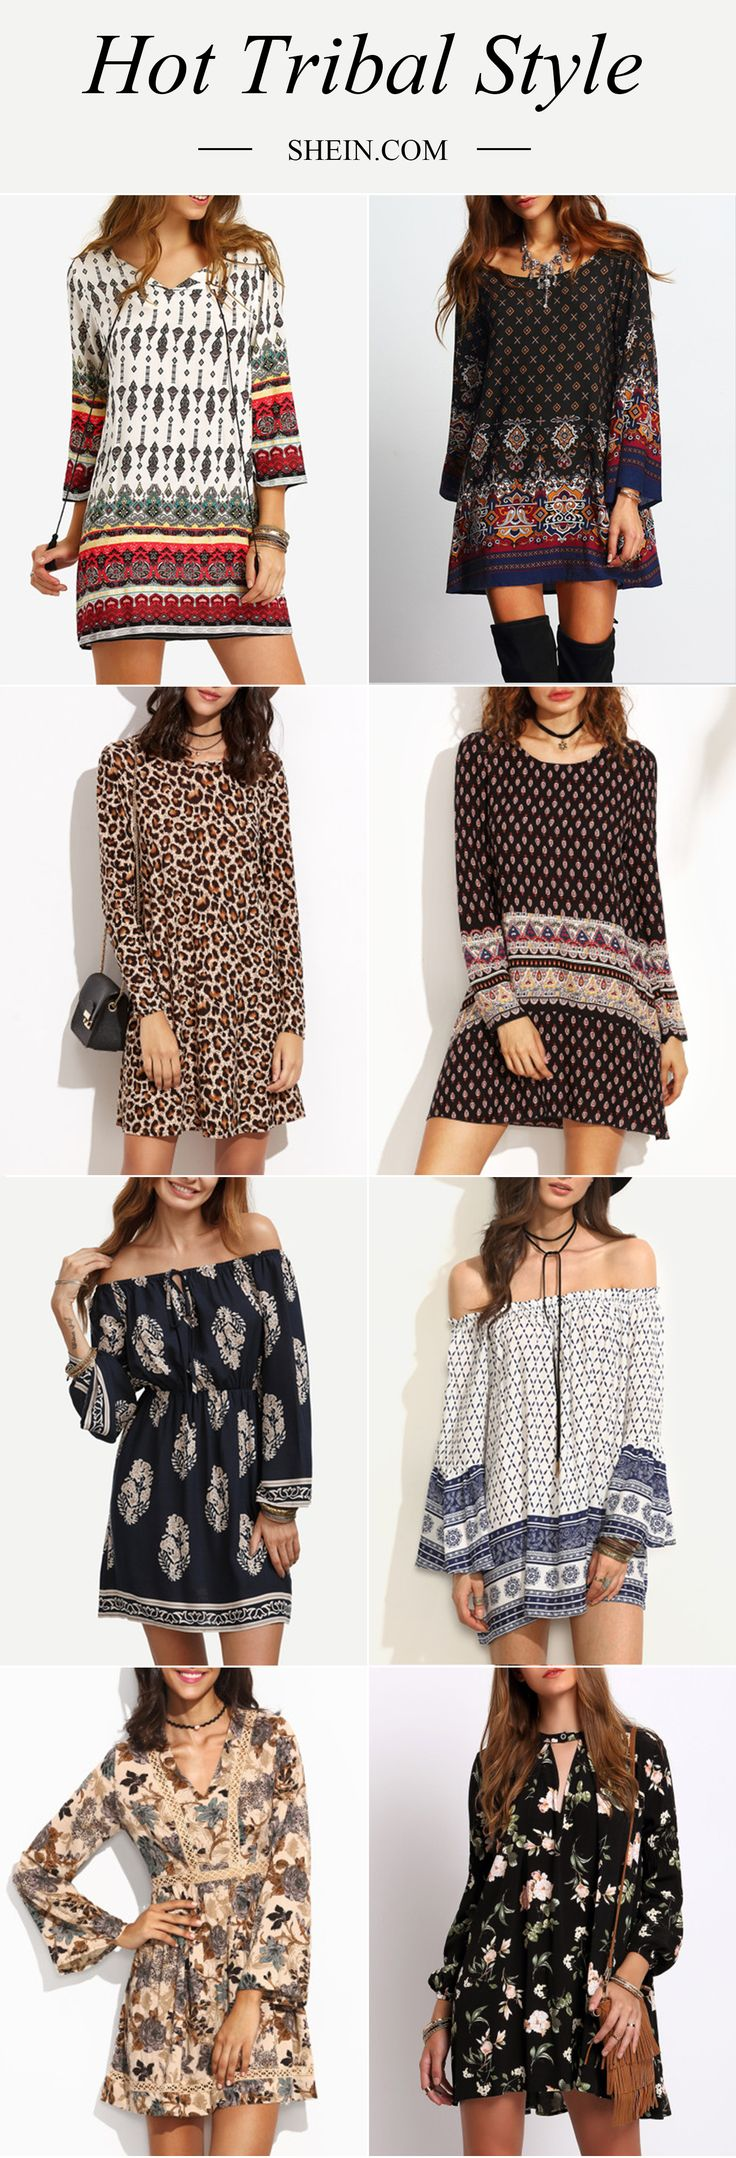 Super! Adorable tribal dress for dress up or dress down! Casual chic going out dress for women! Love!